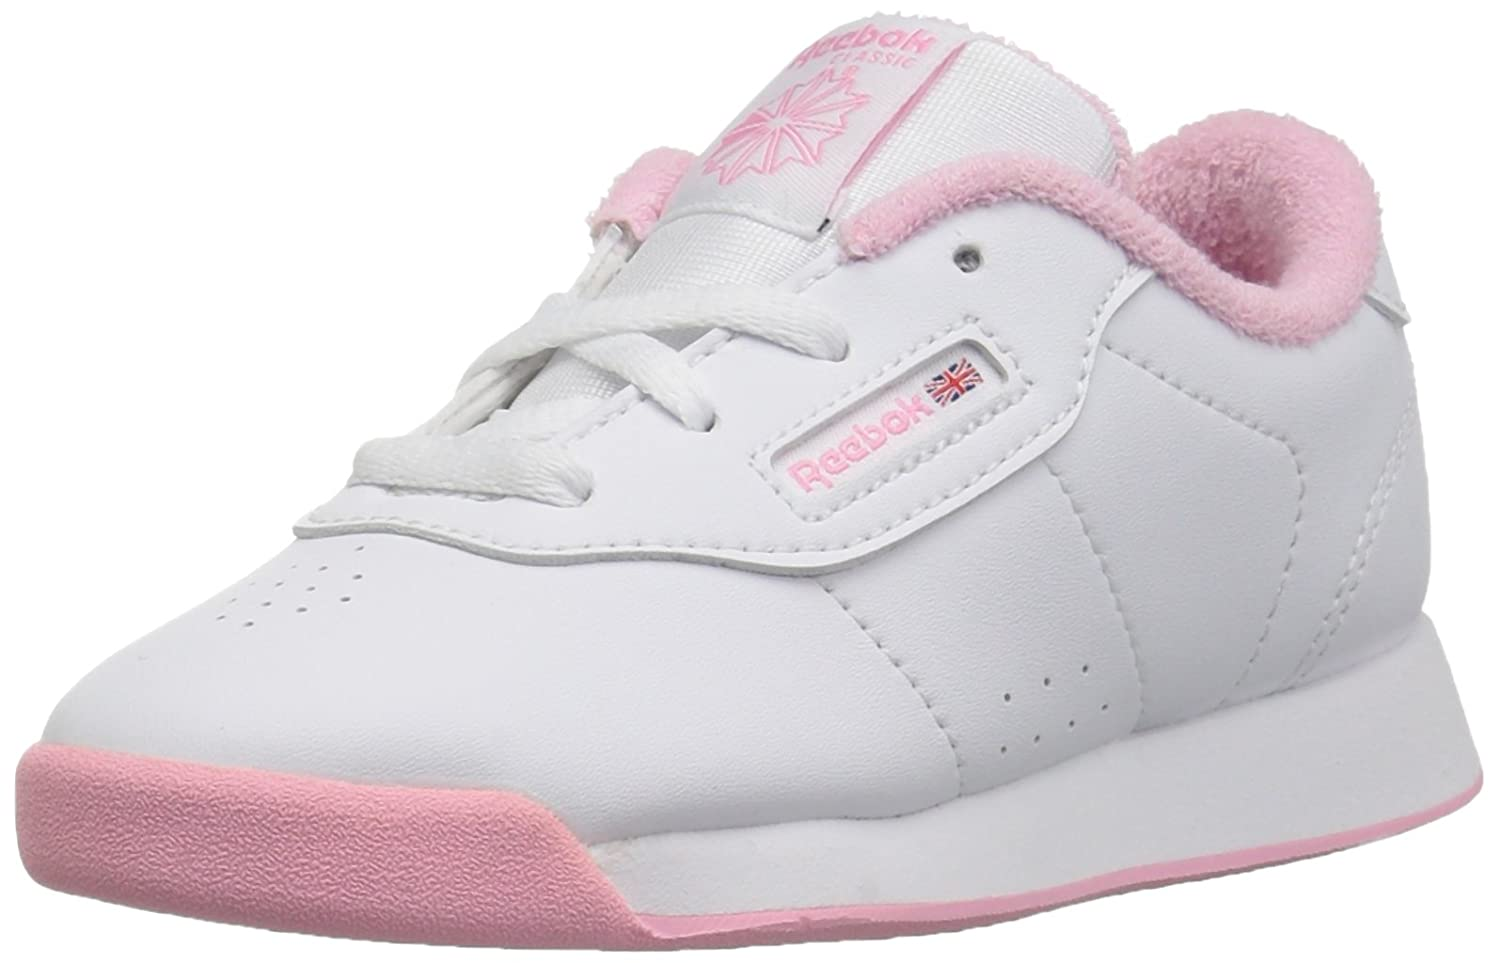 Reebok Kids' Princess Sneaker